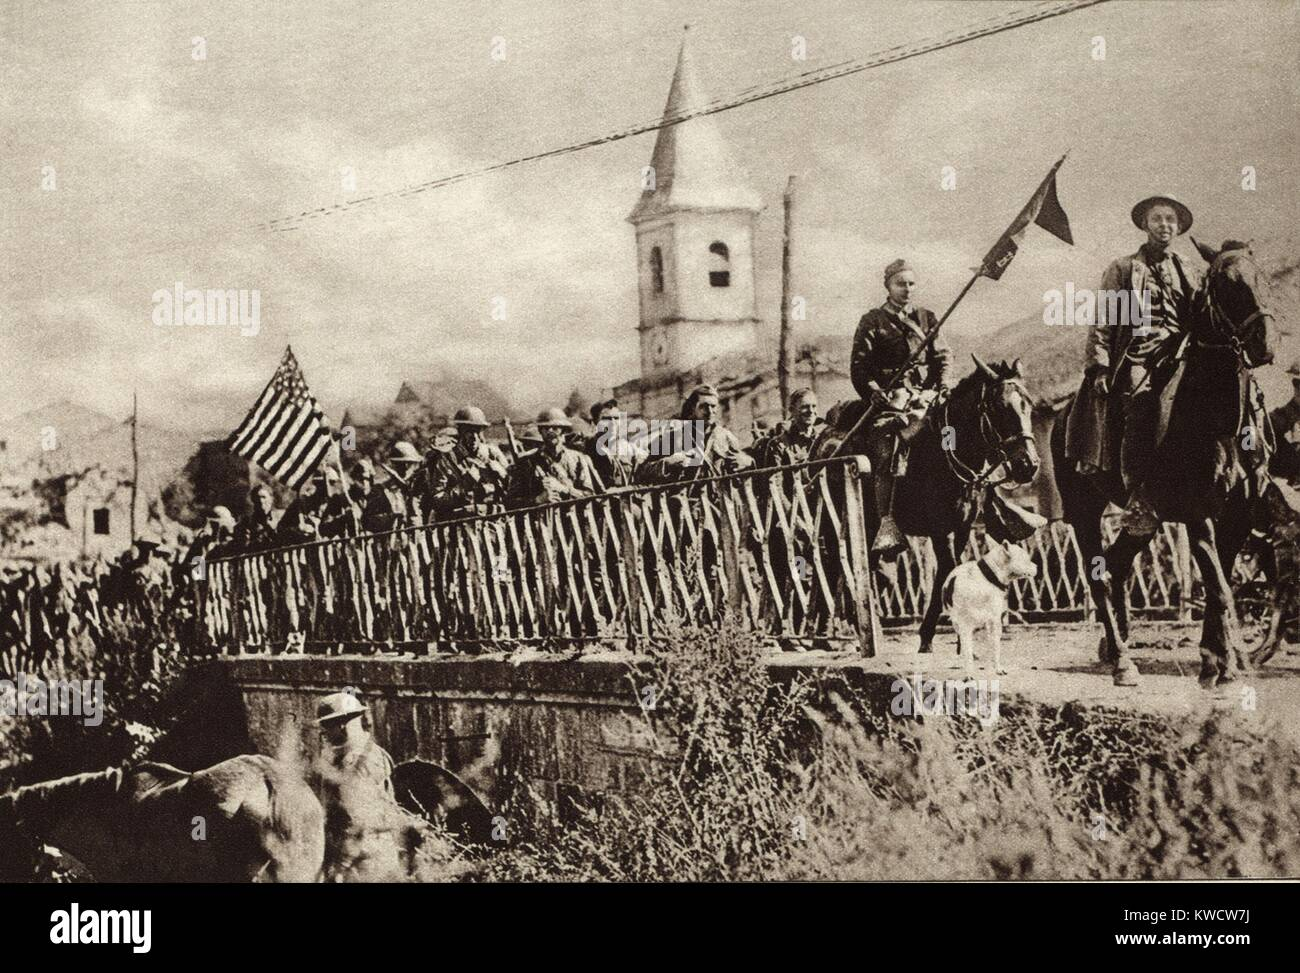 World War 1: Battle of St. Mihiel. Company of American Engineers, with colors flying, passing through the French - Stock Image